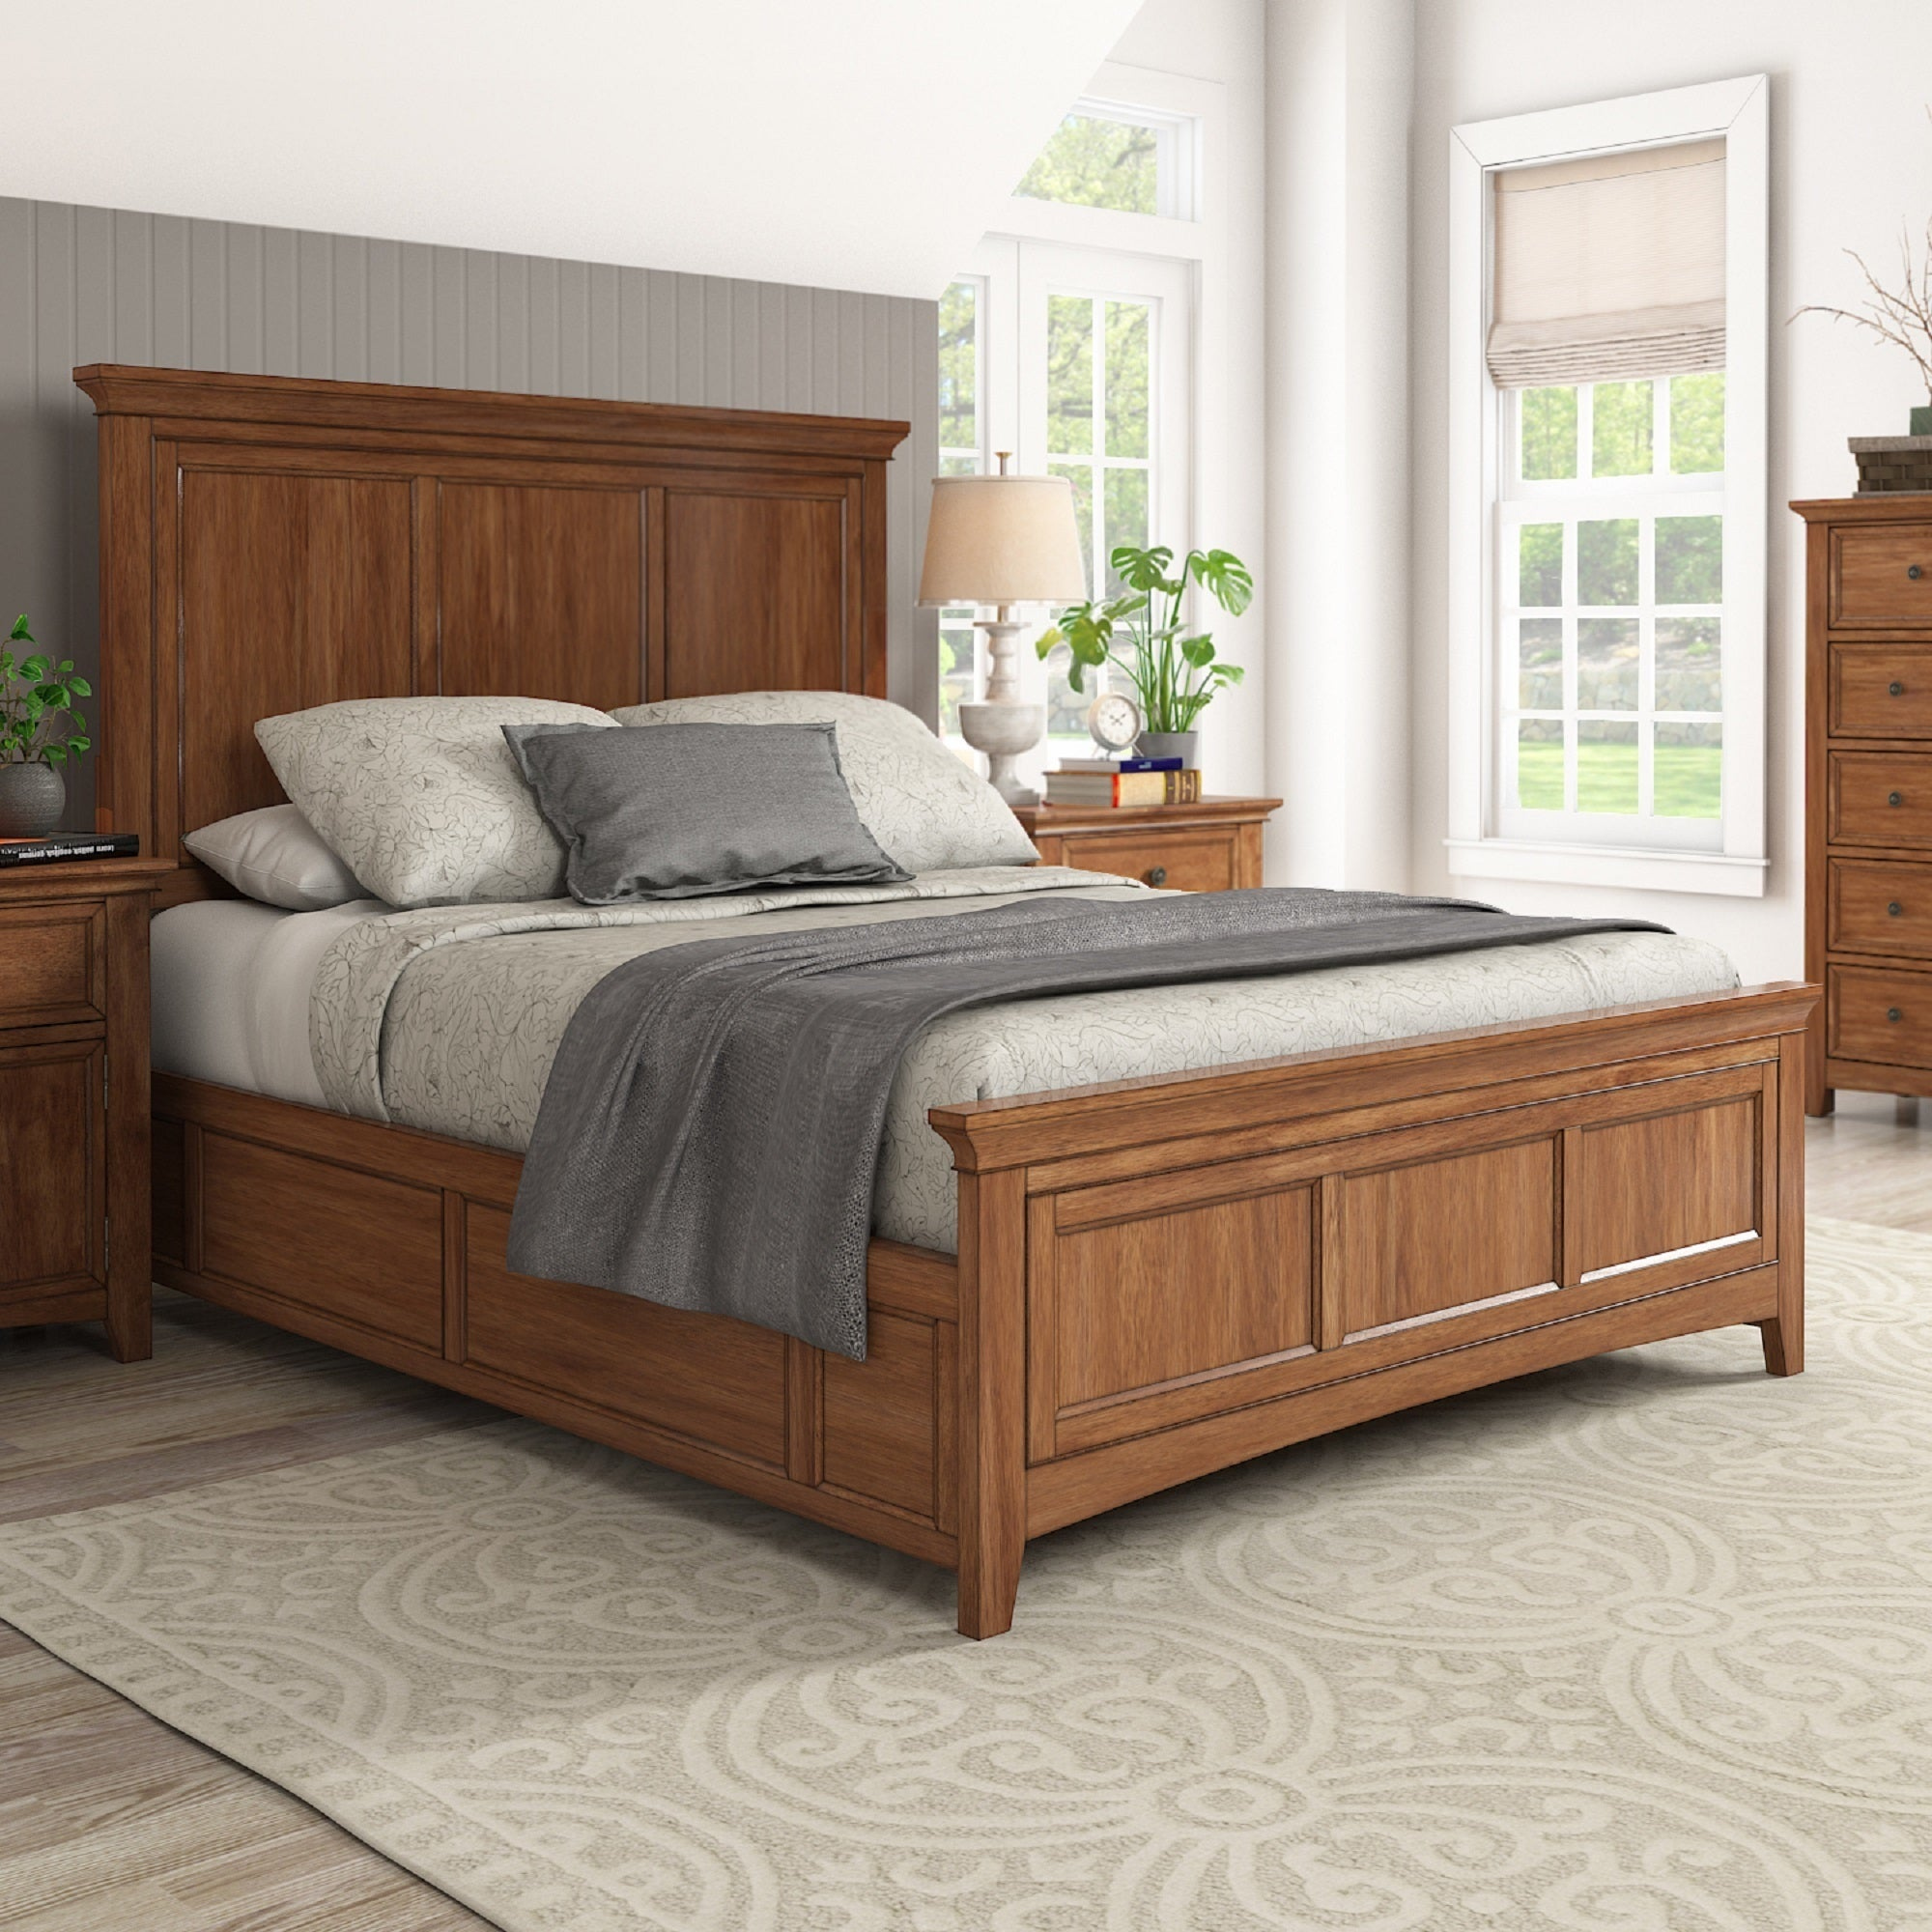 Ediline-Queen-Size-Wood-Panel-Bed-by-iNSPIRE-